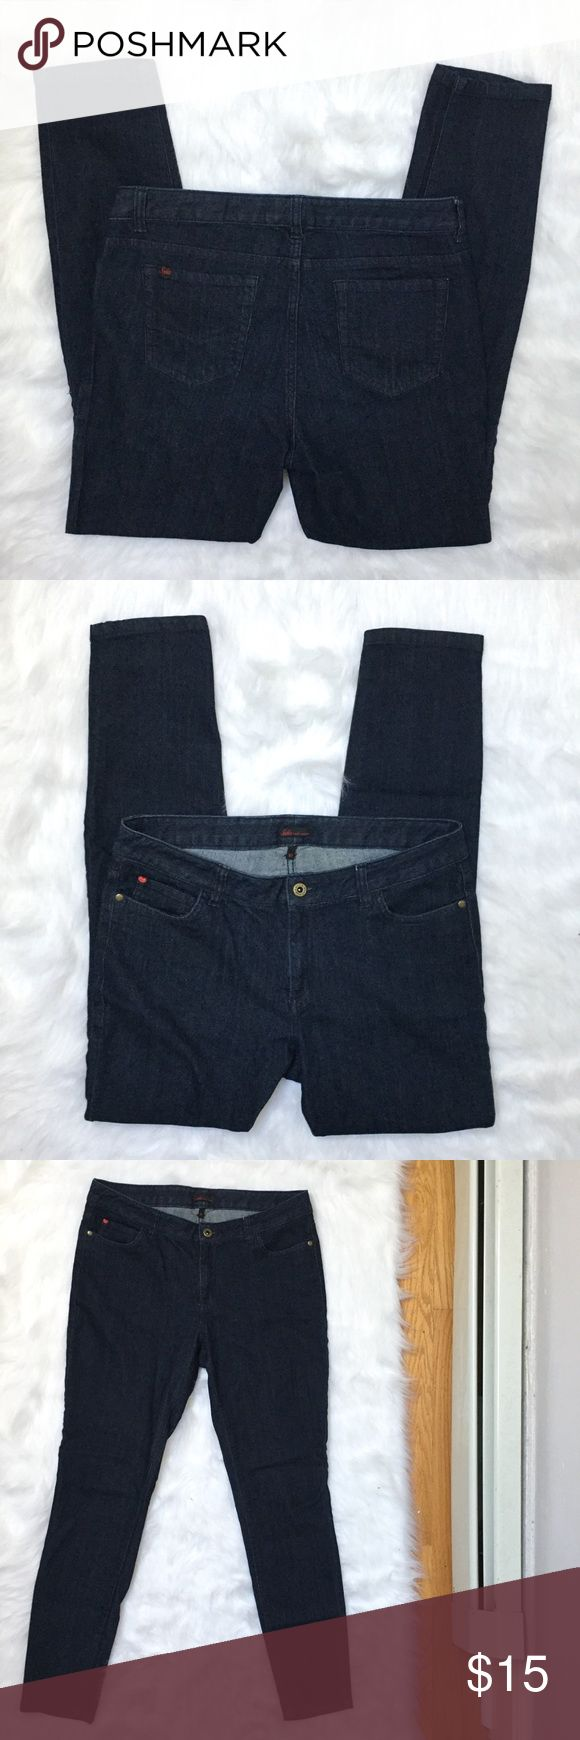 """[Sofia Vergara] dark wash skinny jeans size 10 - Size: 10 - Condition: Great - Color: dark wash blue  - Pockets: yes - Closure: zipper and metal button - Style: Sofia Vergara dark wash skinny jeans - Extra notes:  *Measurements:  Waist: 15.5"""" flat Hips: 18.75"""" flat Rise: 9.5"""" Inseam: 29.25""""  Bundling is fun, check out my other items! Home is smoke free. No trades, holds, modeling, or negotiations in comments. Sofia Vergara Jeans Skinny"""